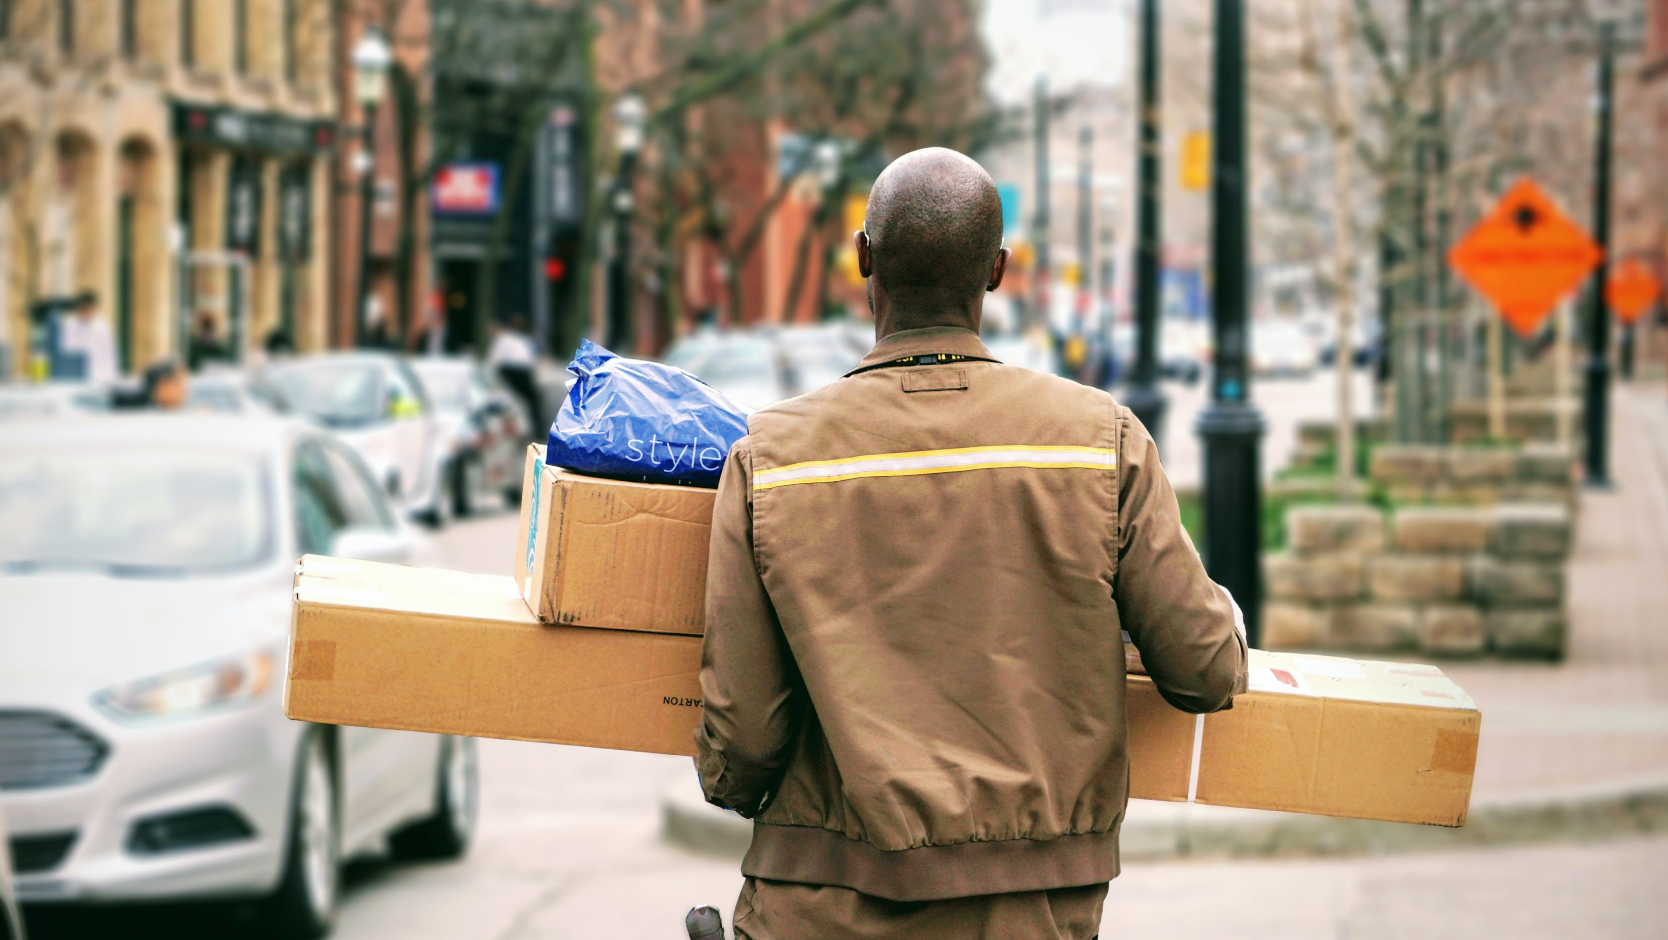 Delivery driver working alone delivering post